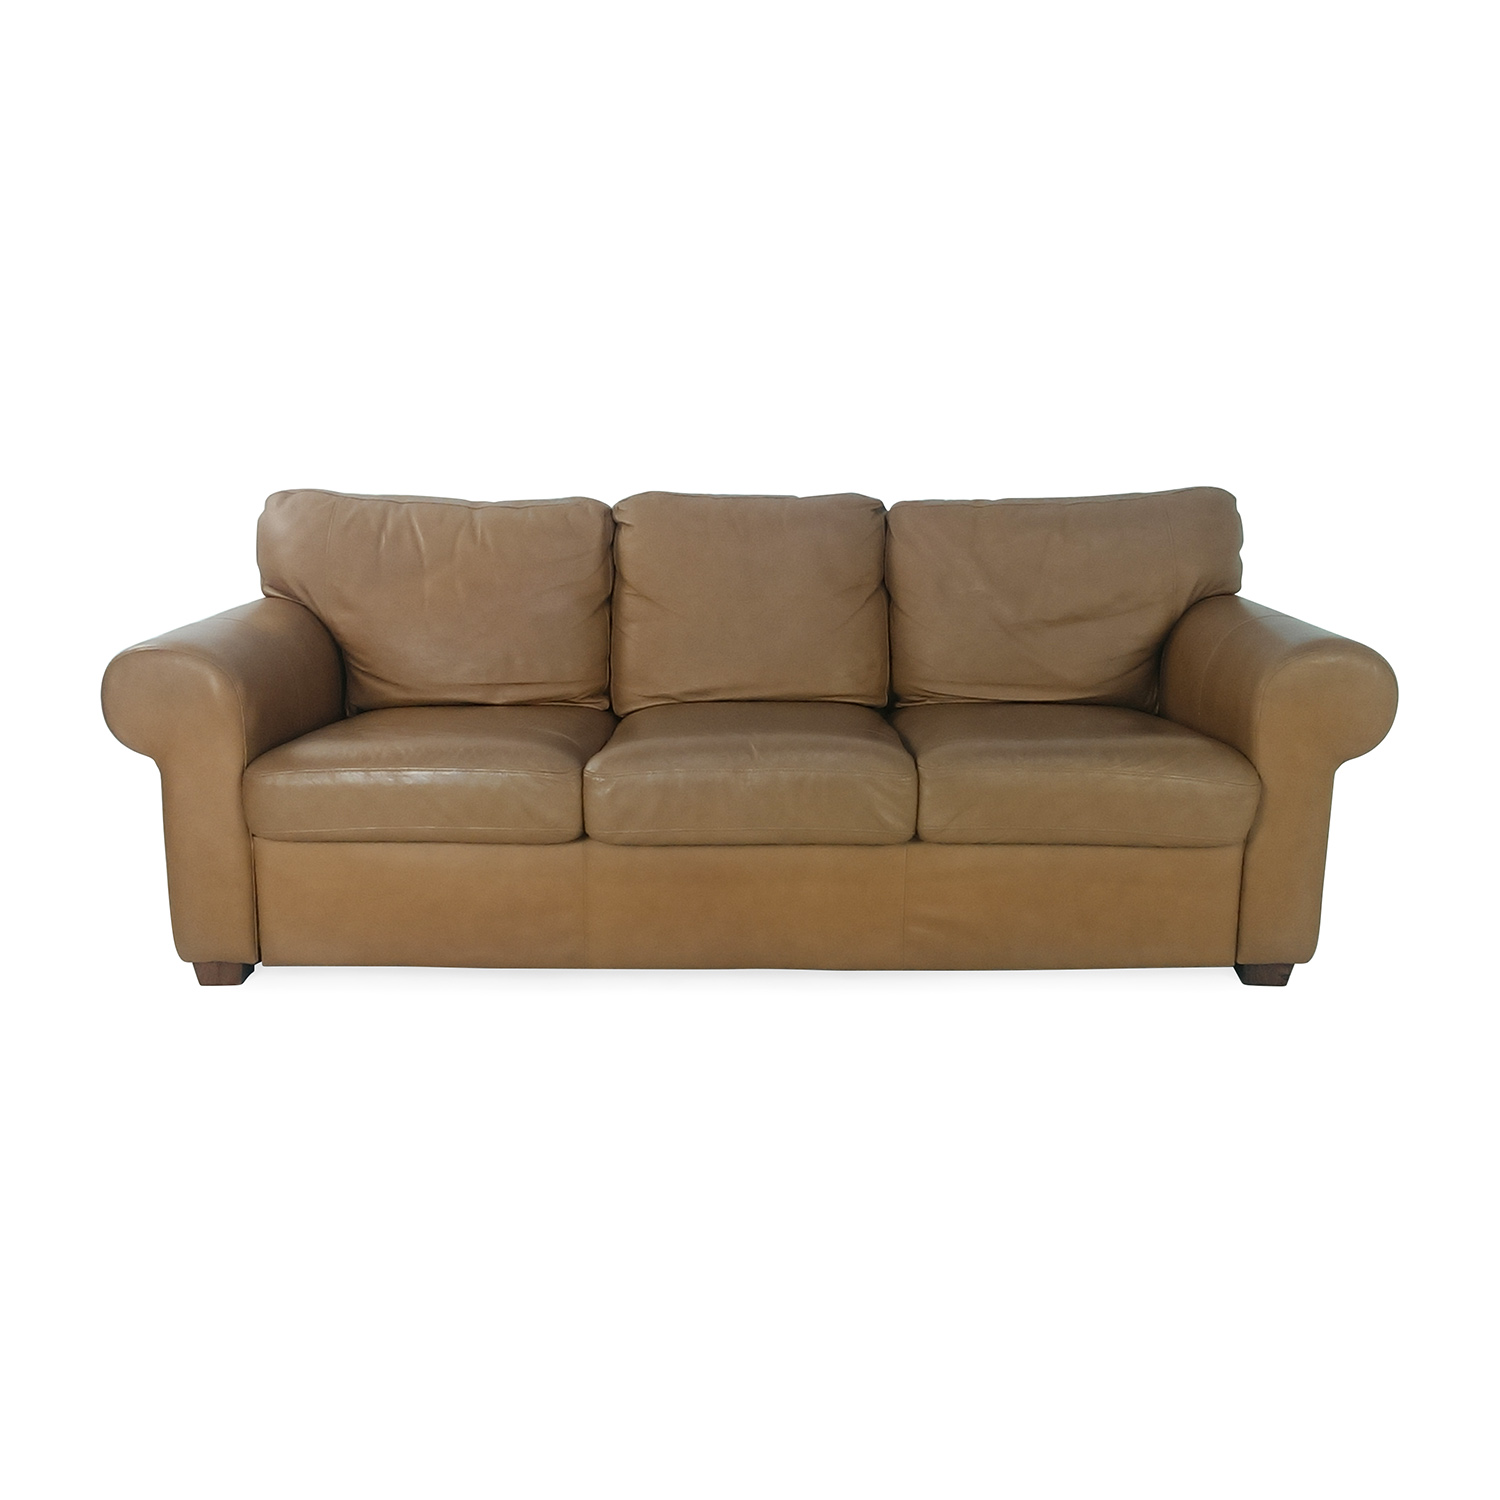 Crate and Barrel Crate and Barrel Leather Couch discount